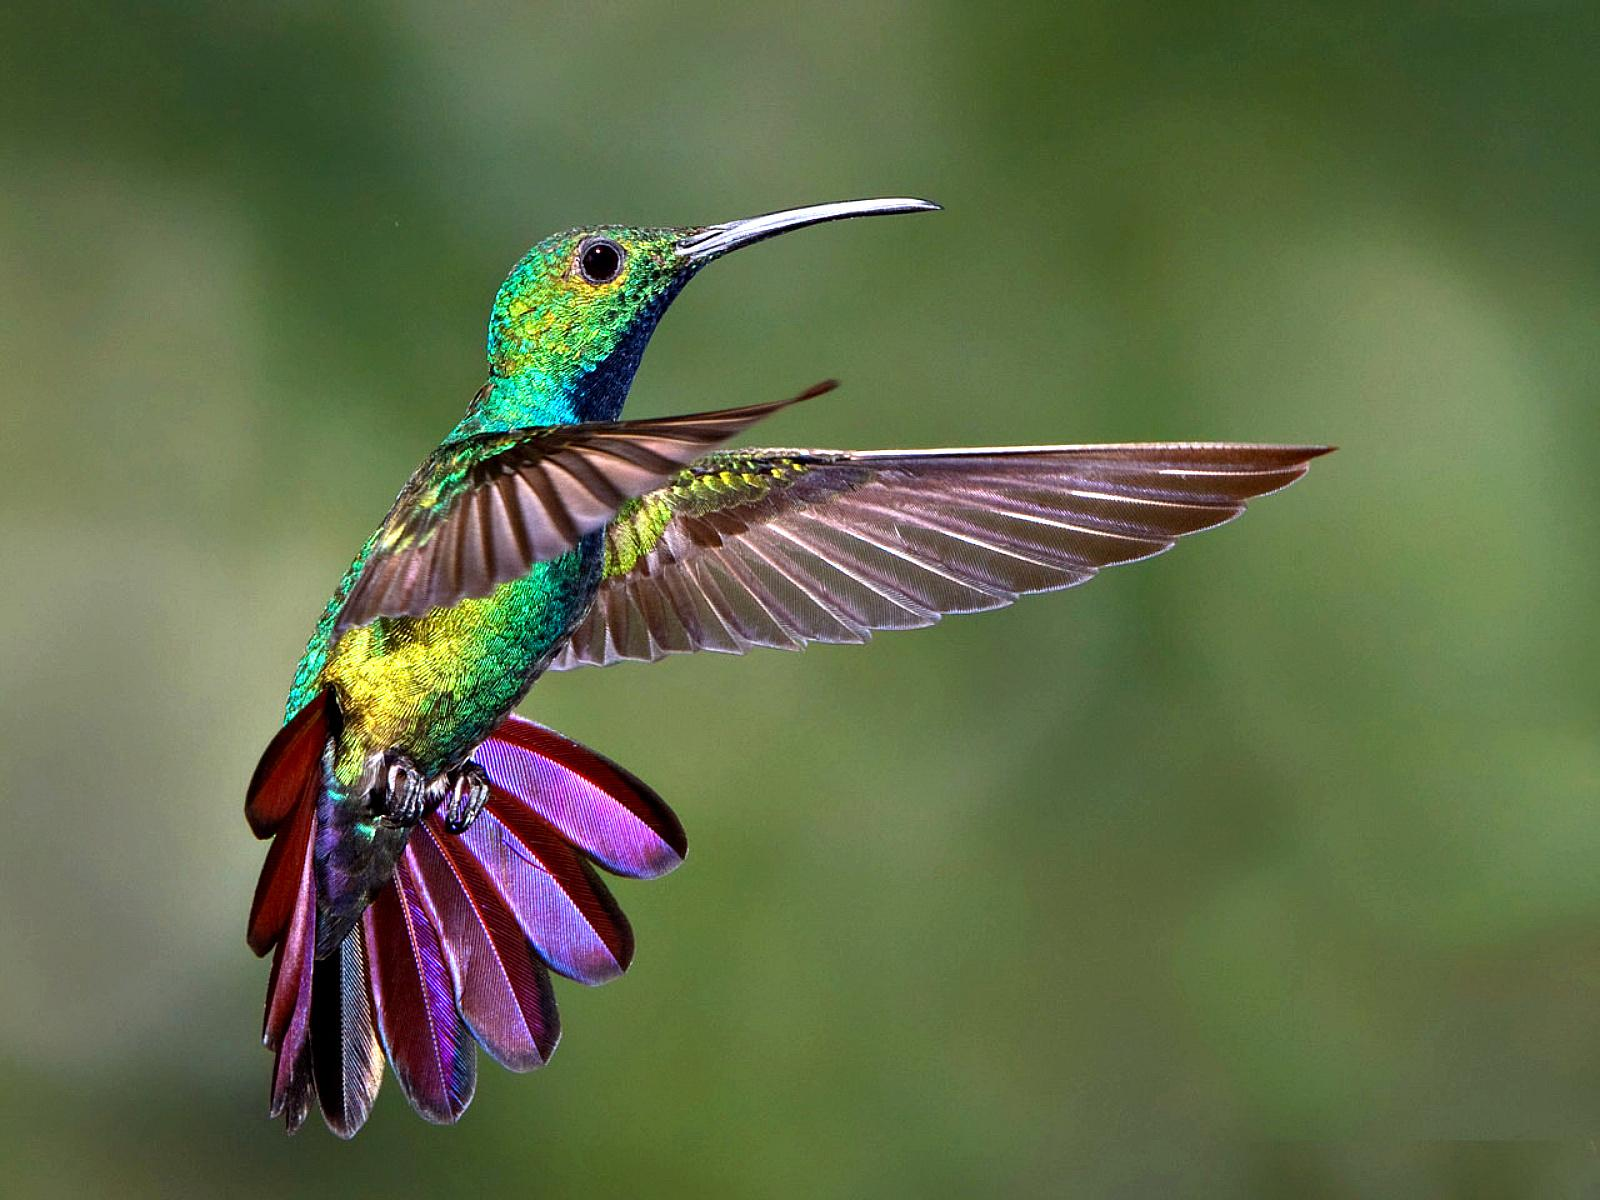 Hummingbird Freeze Frame Wallpaper #403292 - Resolution 1600x1200 px